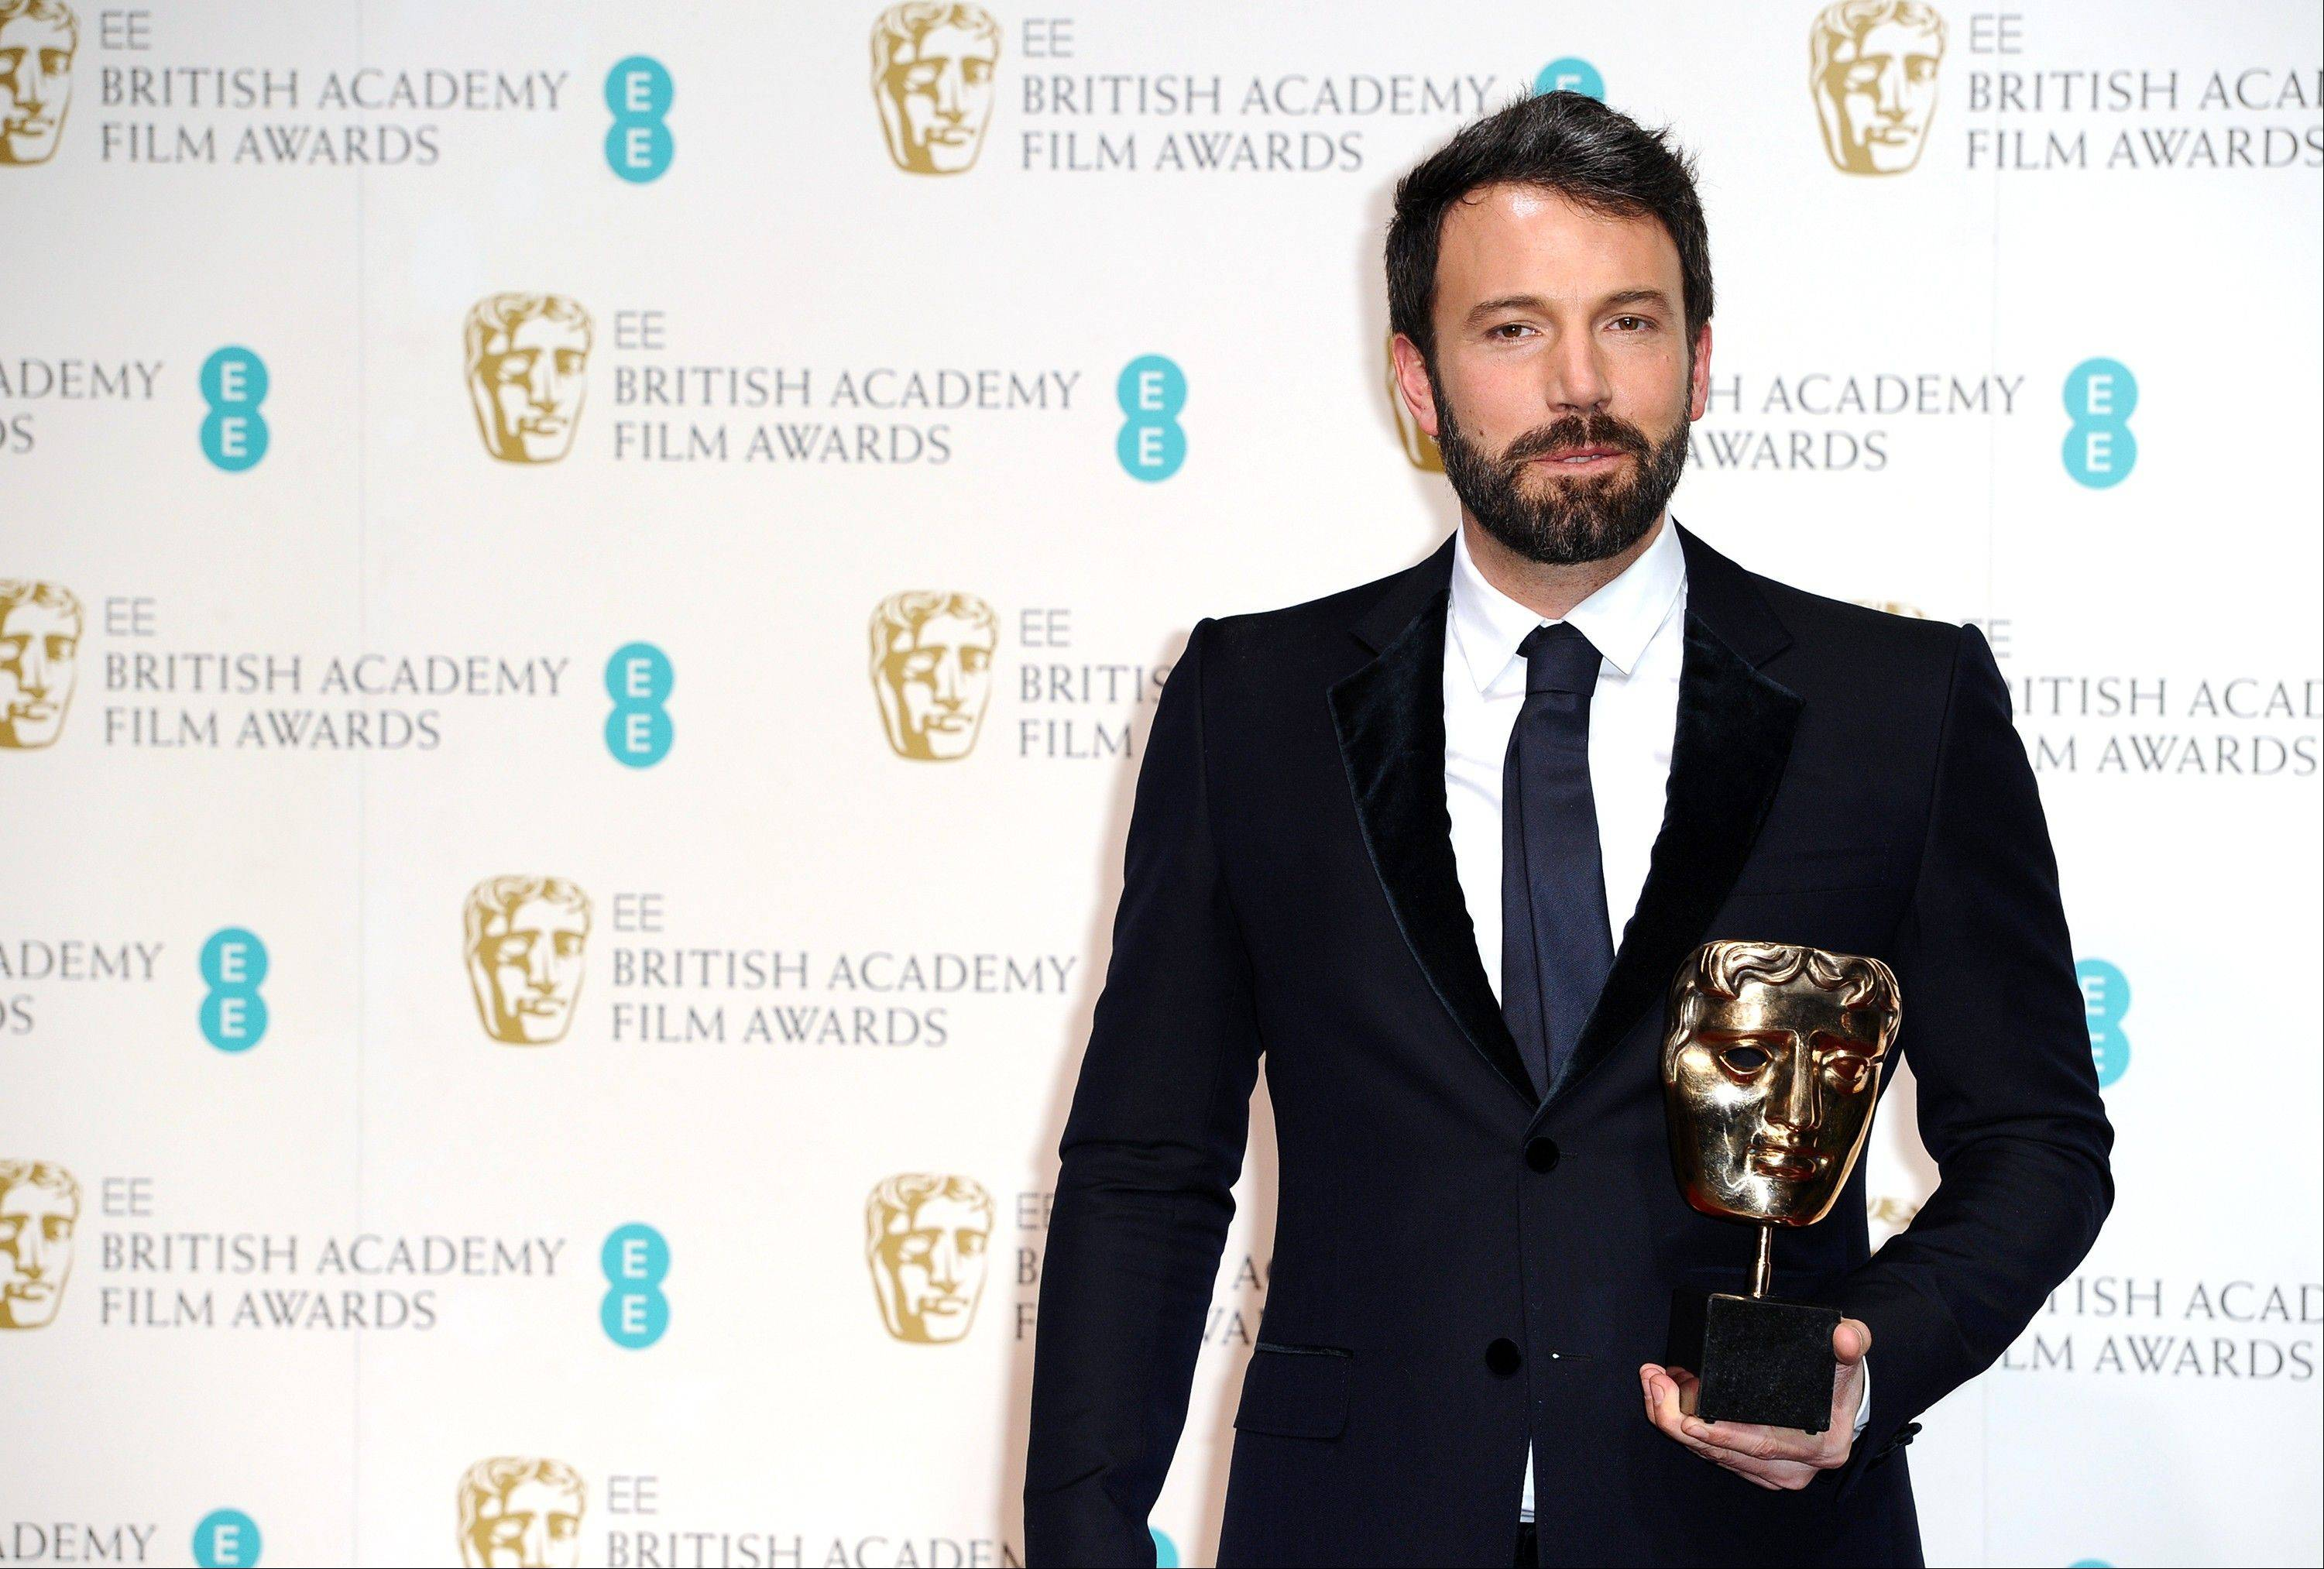 Actor and director Ben Affleck with the award for Best Film for �Argo,� at the BAFTA Film Awards at the Royal Opera House on Sunday, Feb. 10, 2013, in London.